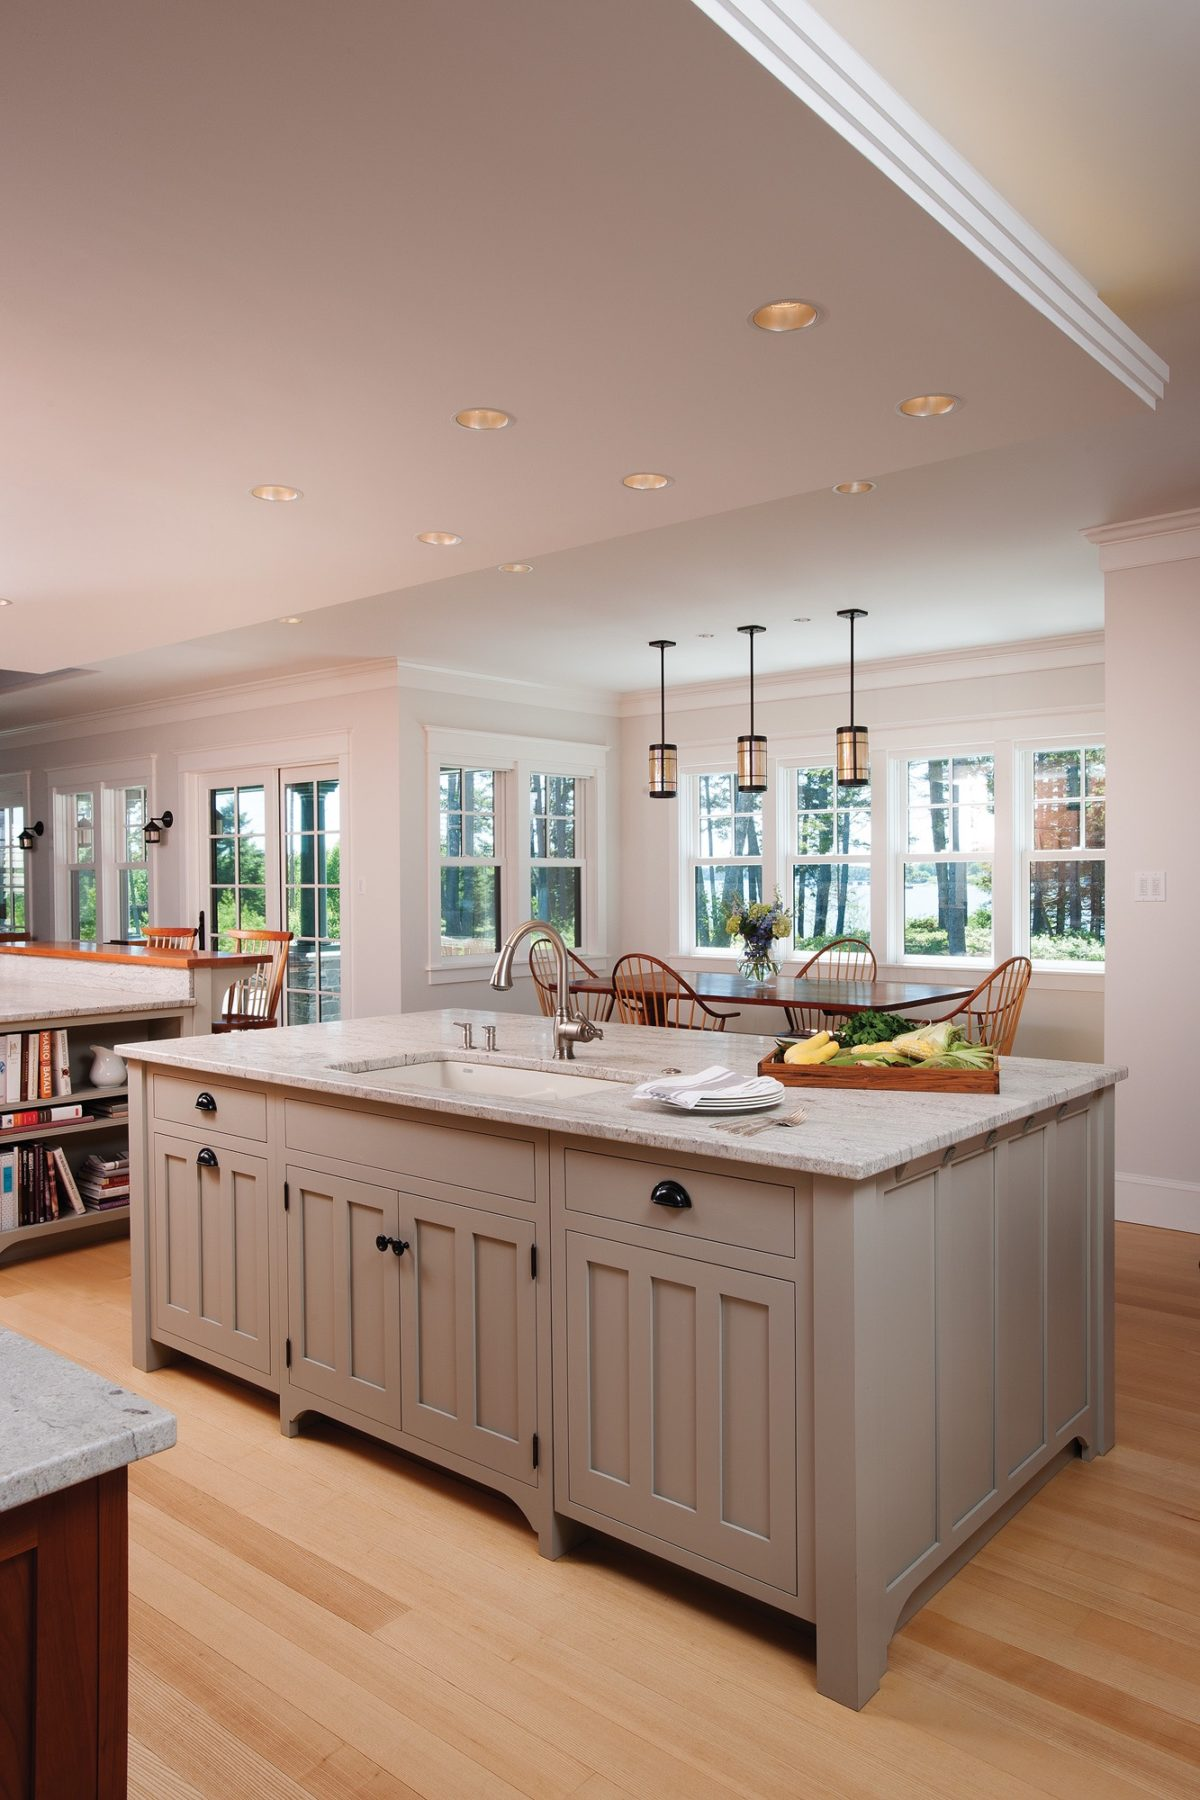 100 maine coast kitchen design portland maine shopping guide coastal living select your - Kitchen design portland maine ...